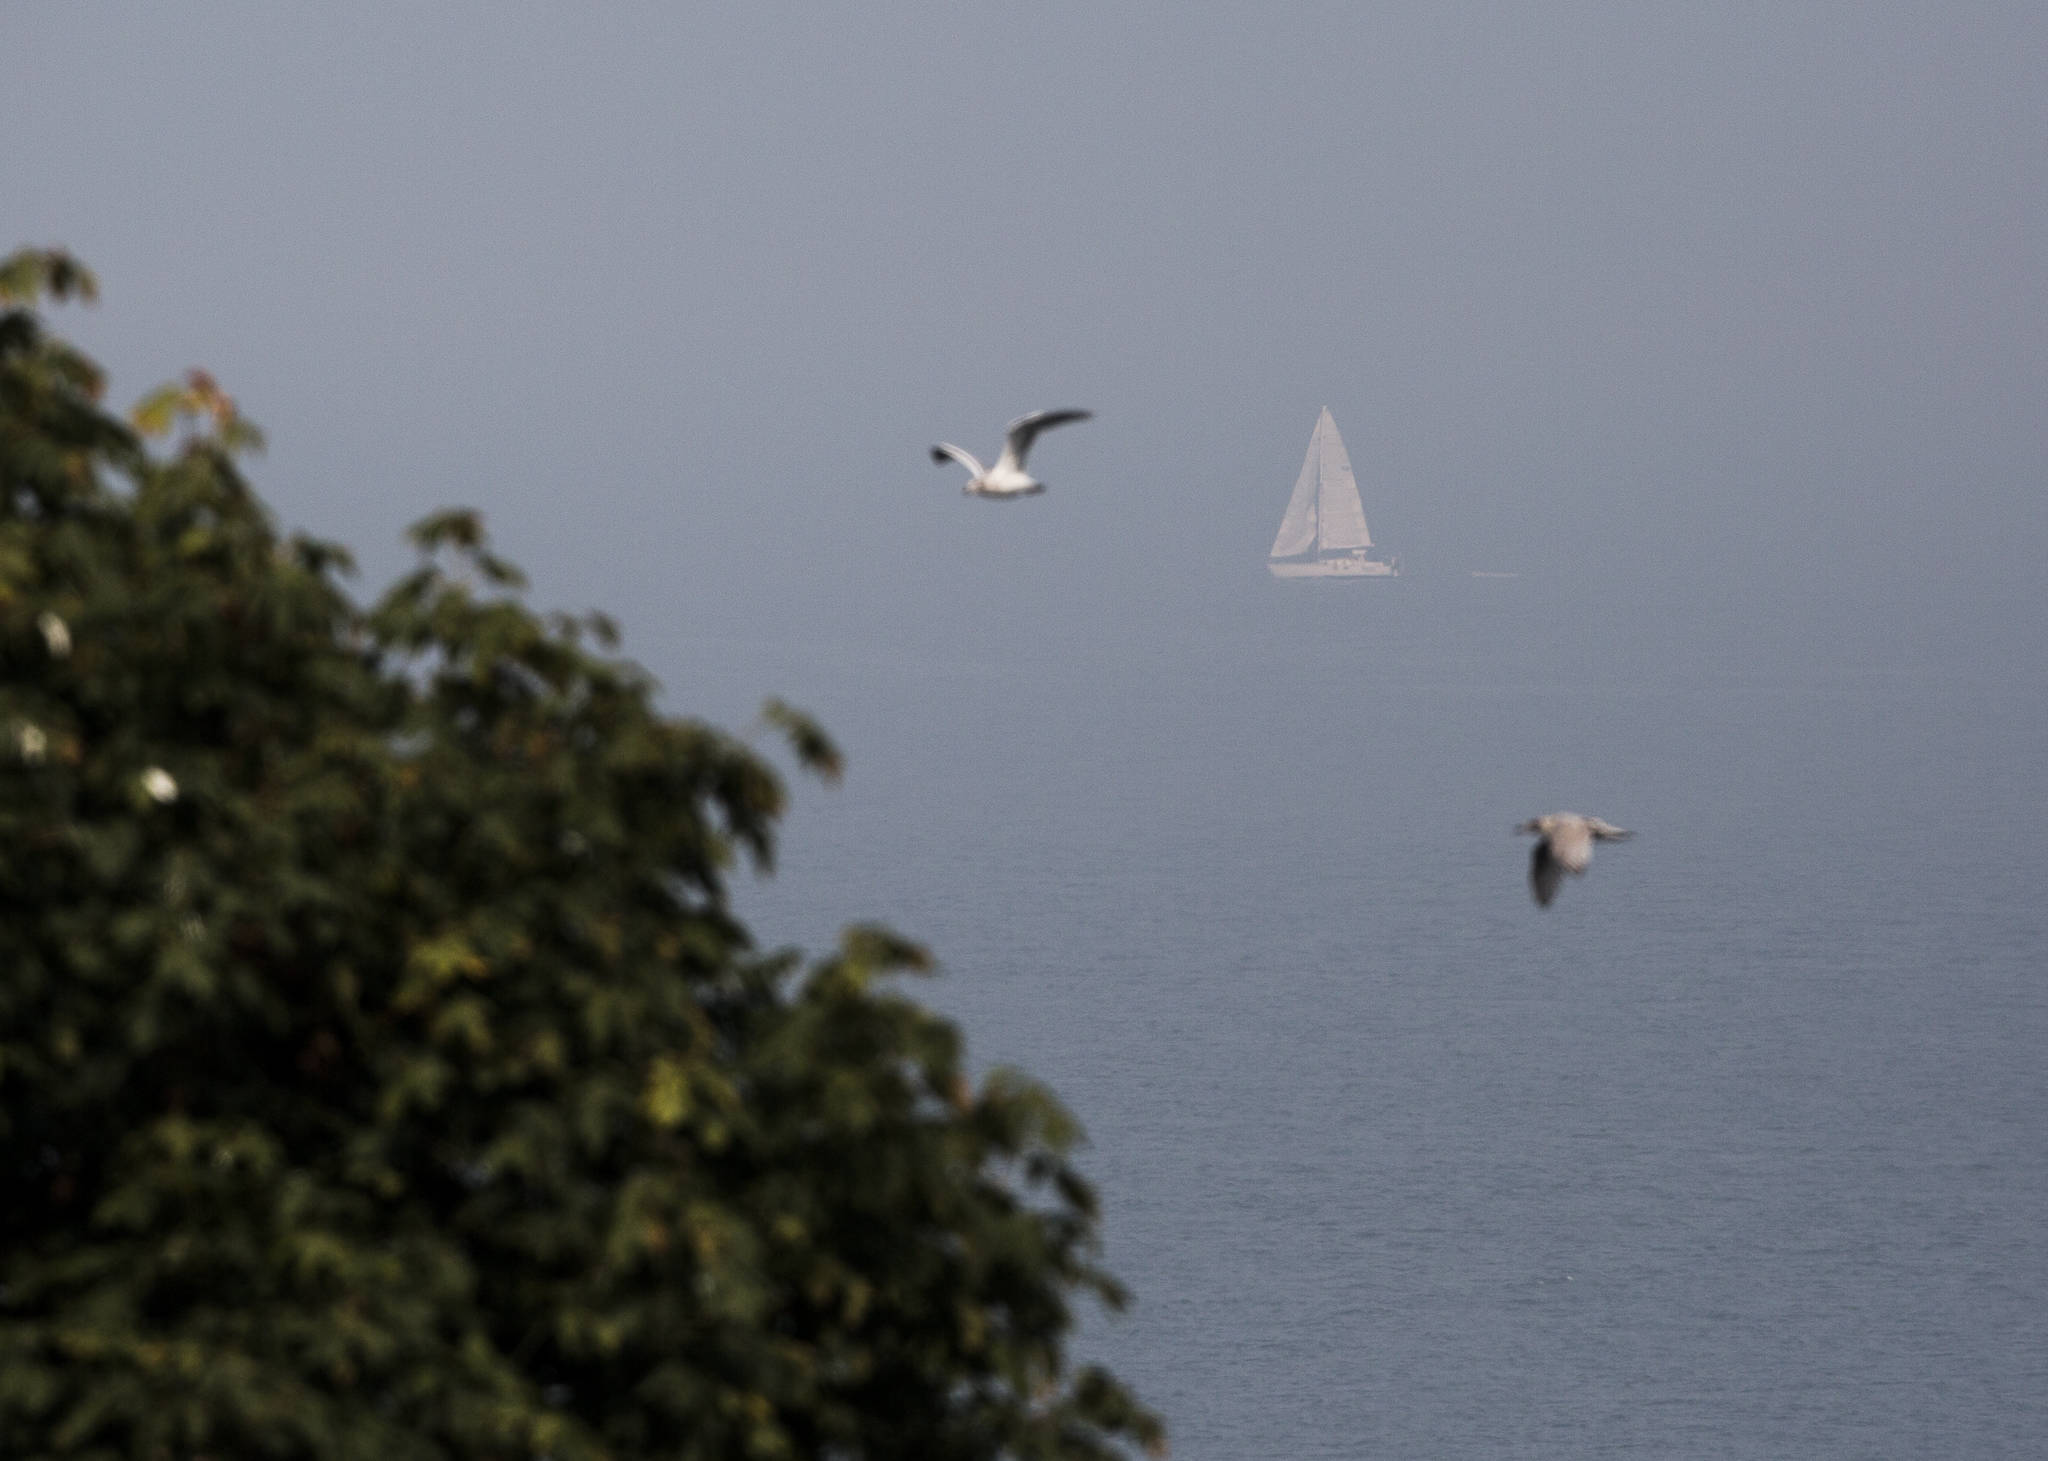 A sailboat navigates its way through the smoke on Possession Sound on Friday, Sept. 11, 2020 in Everett, Wa. (Olivia Vanni / The Herald)